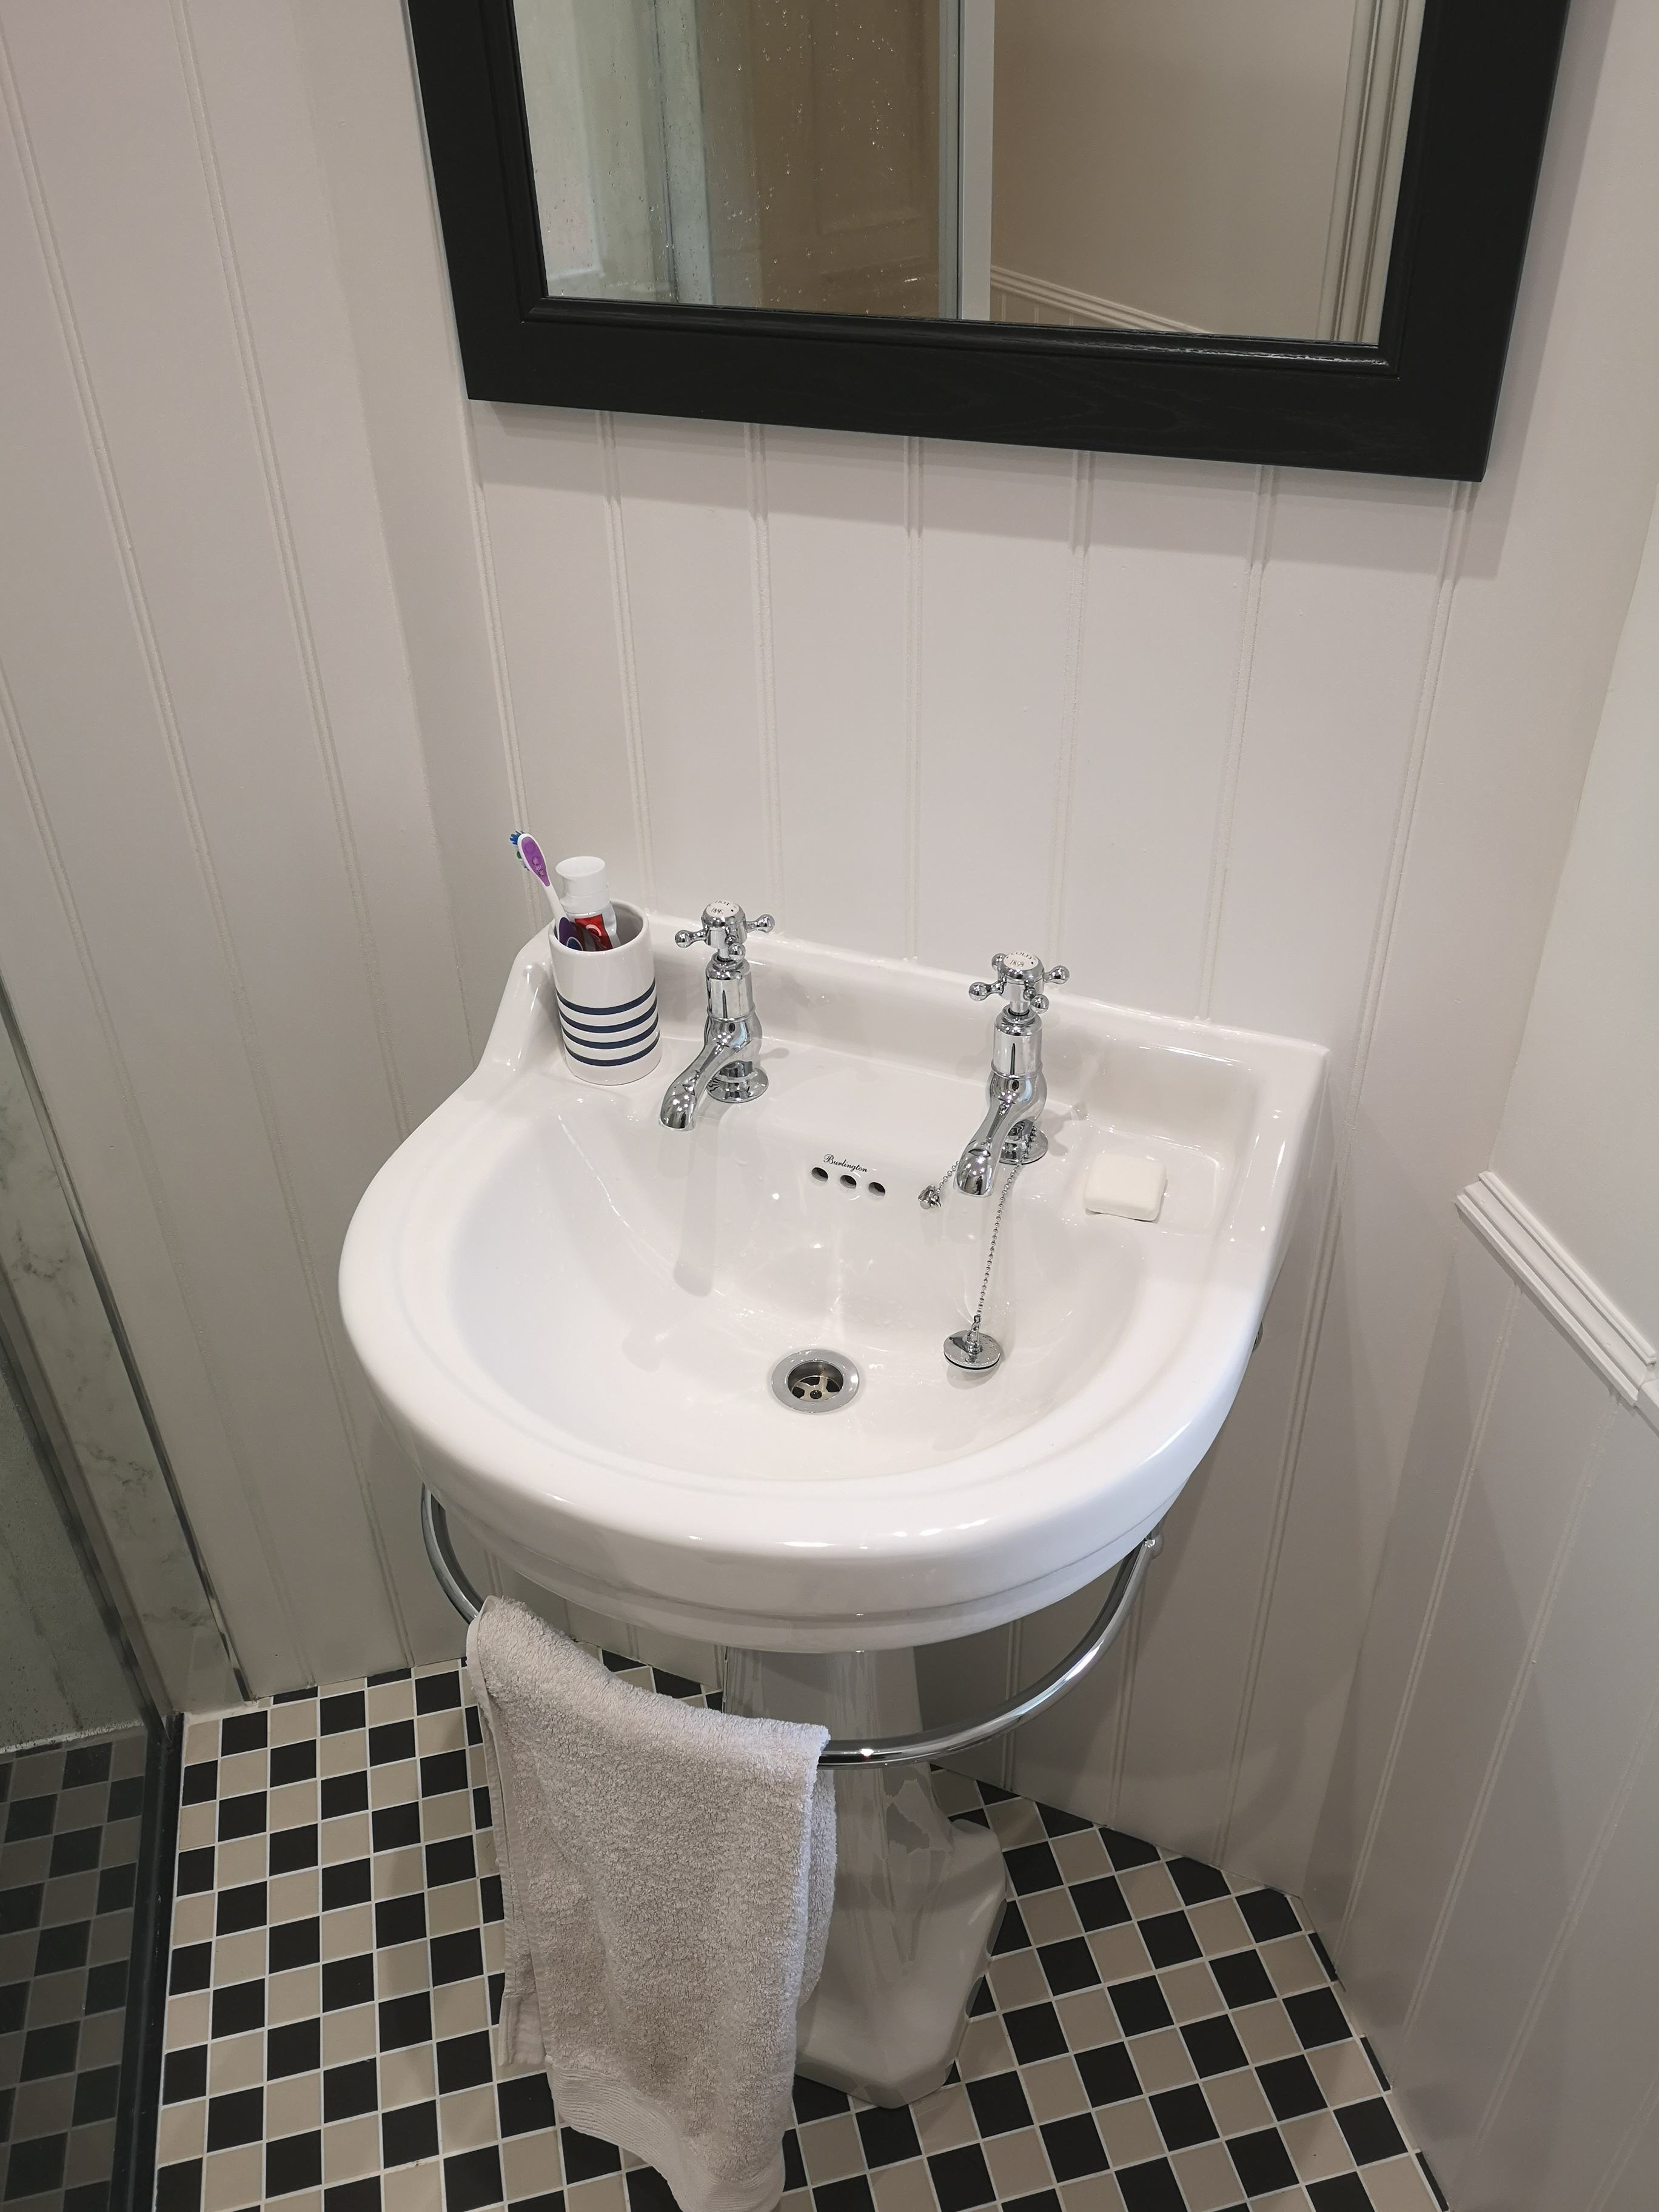 Traditional Bathroom Sink with separate hot and cold taps with towel rail.